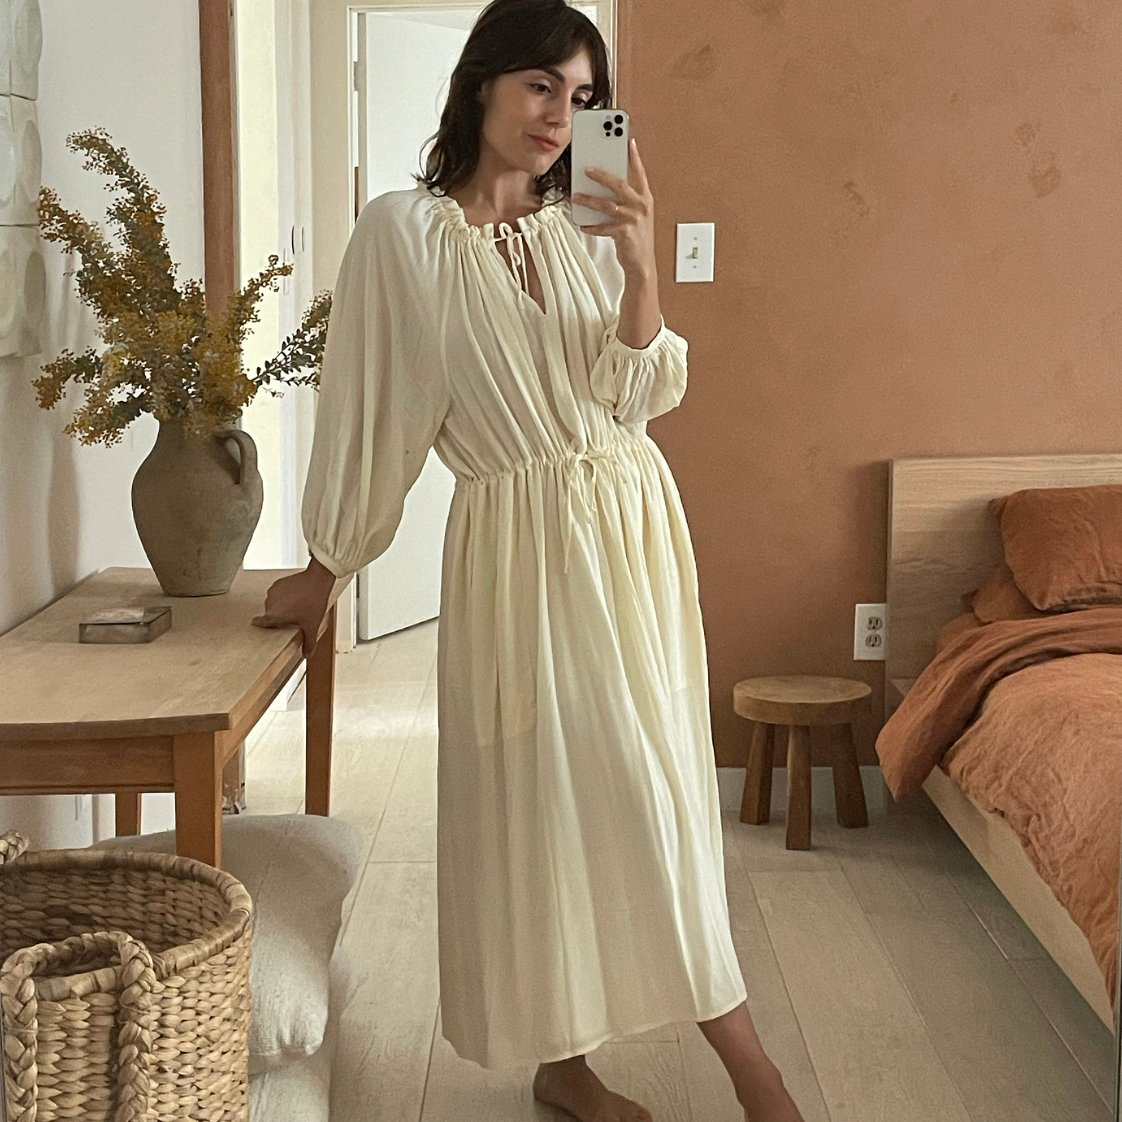 https://shainamote.com/products/lucqa-dress-in-ivory